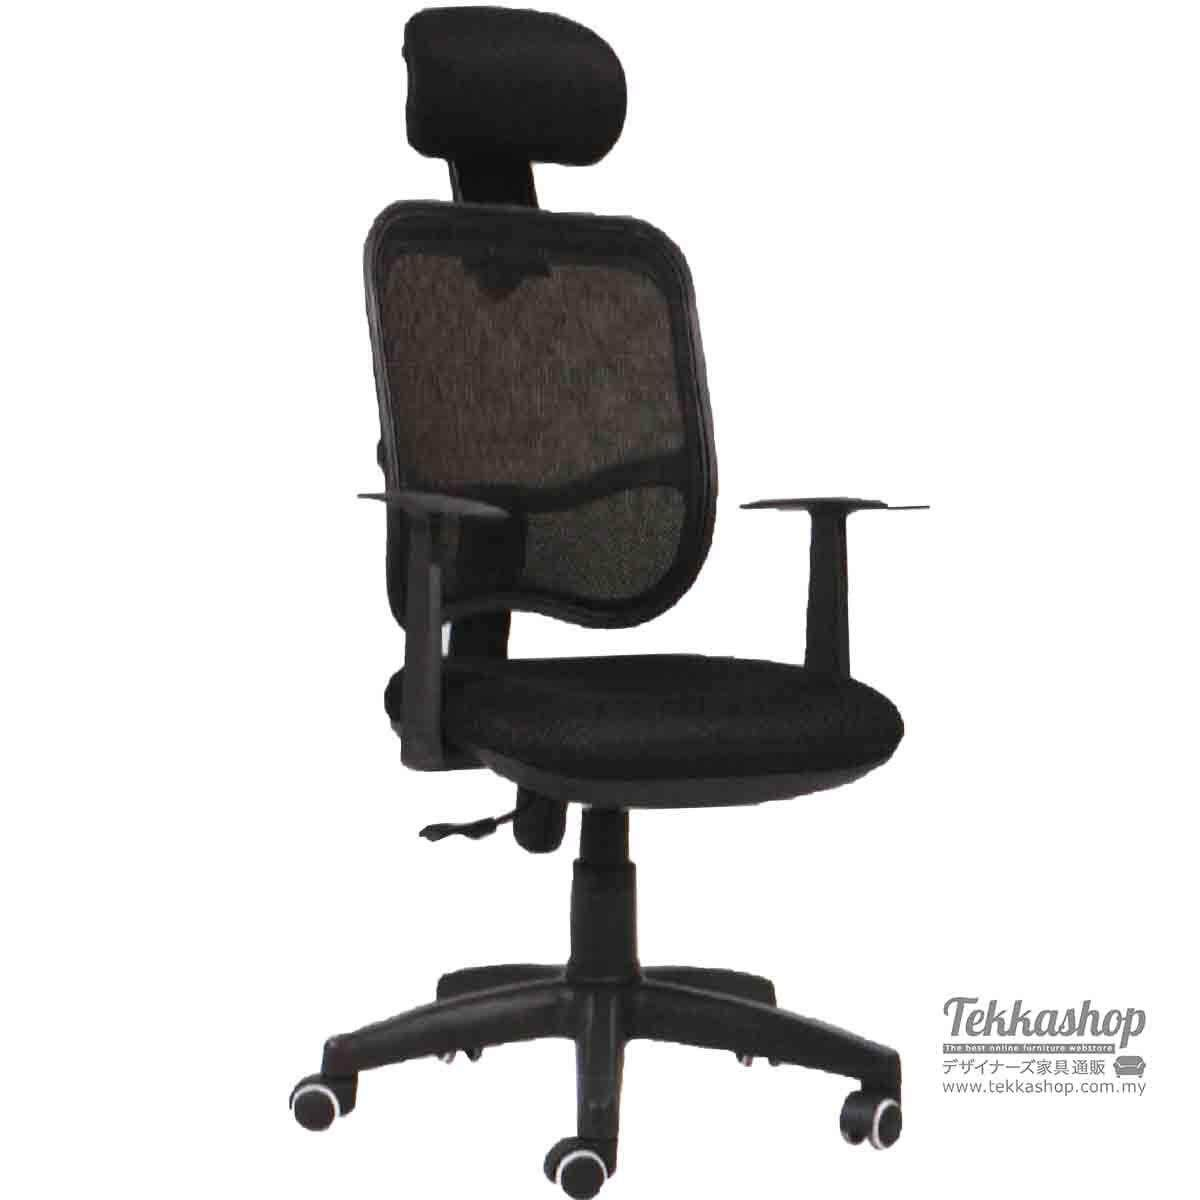 front grey fast wobi chair design office seating delivery seat bradley inspired quality mesh free and lowback